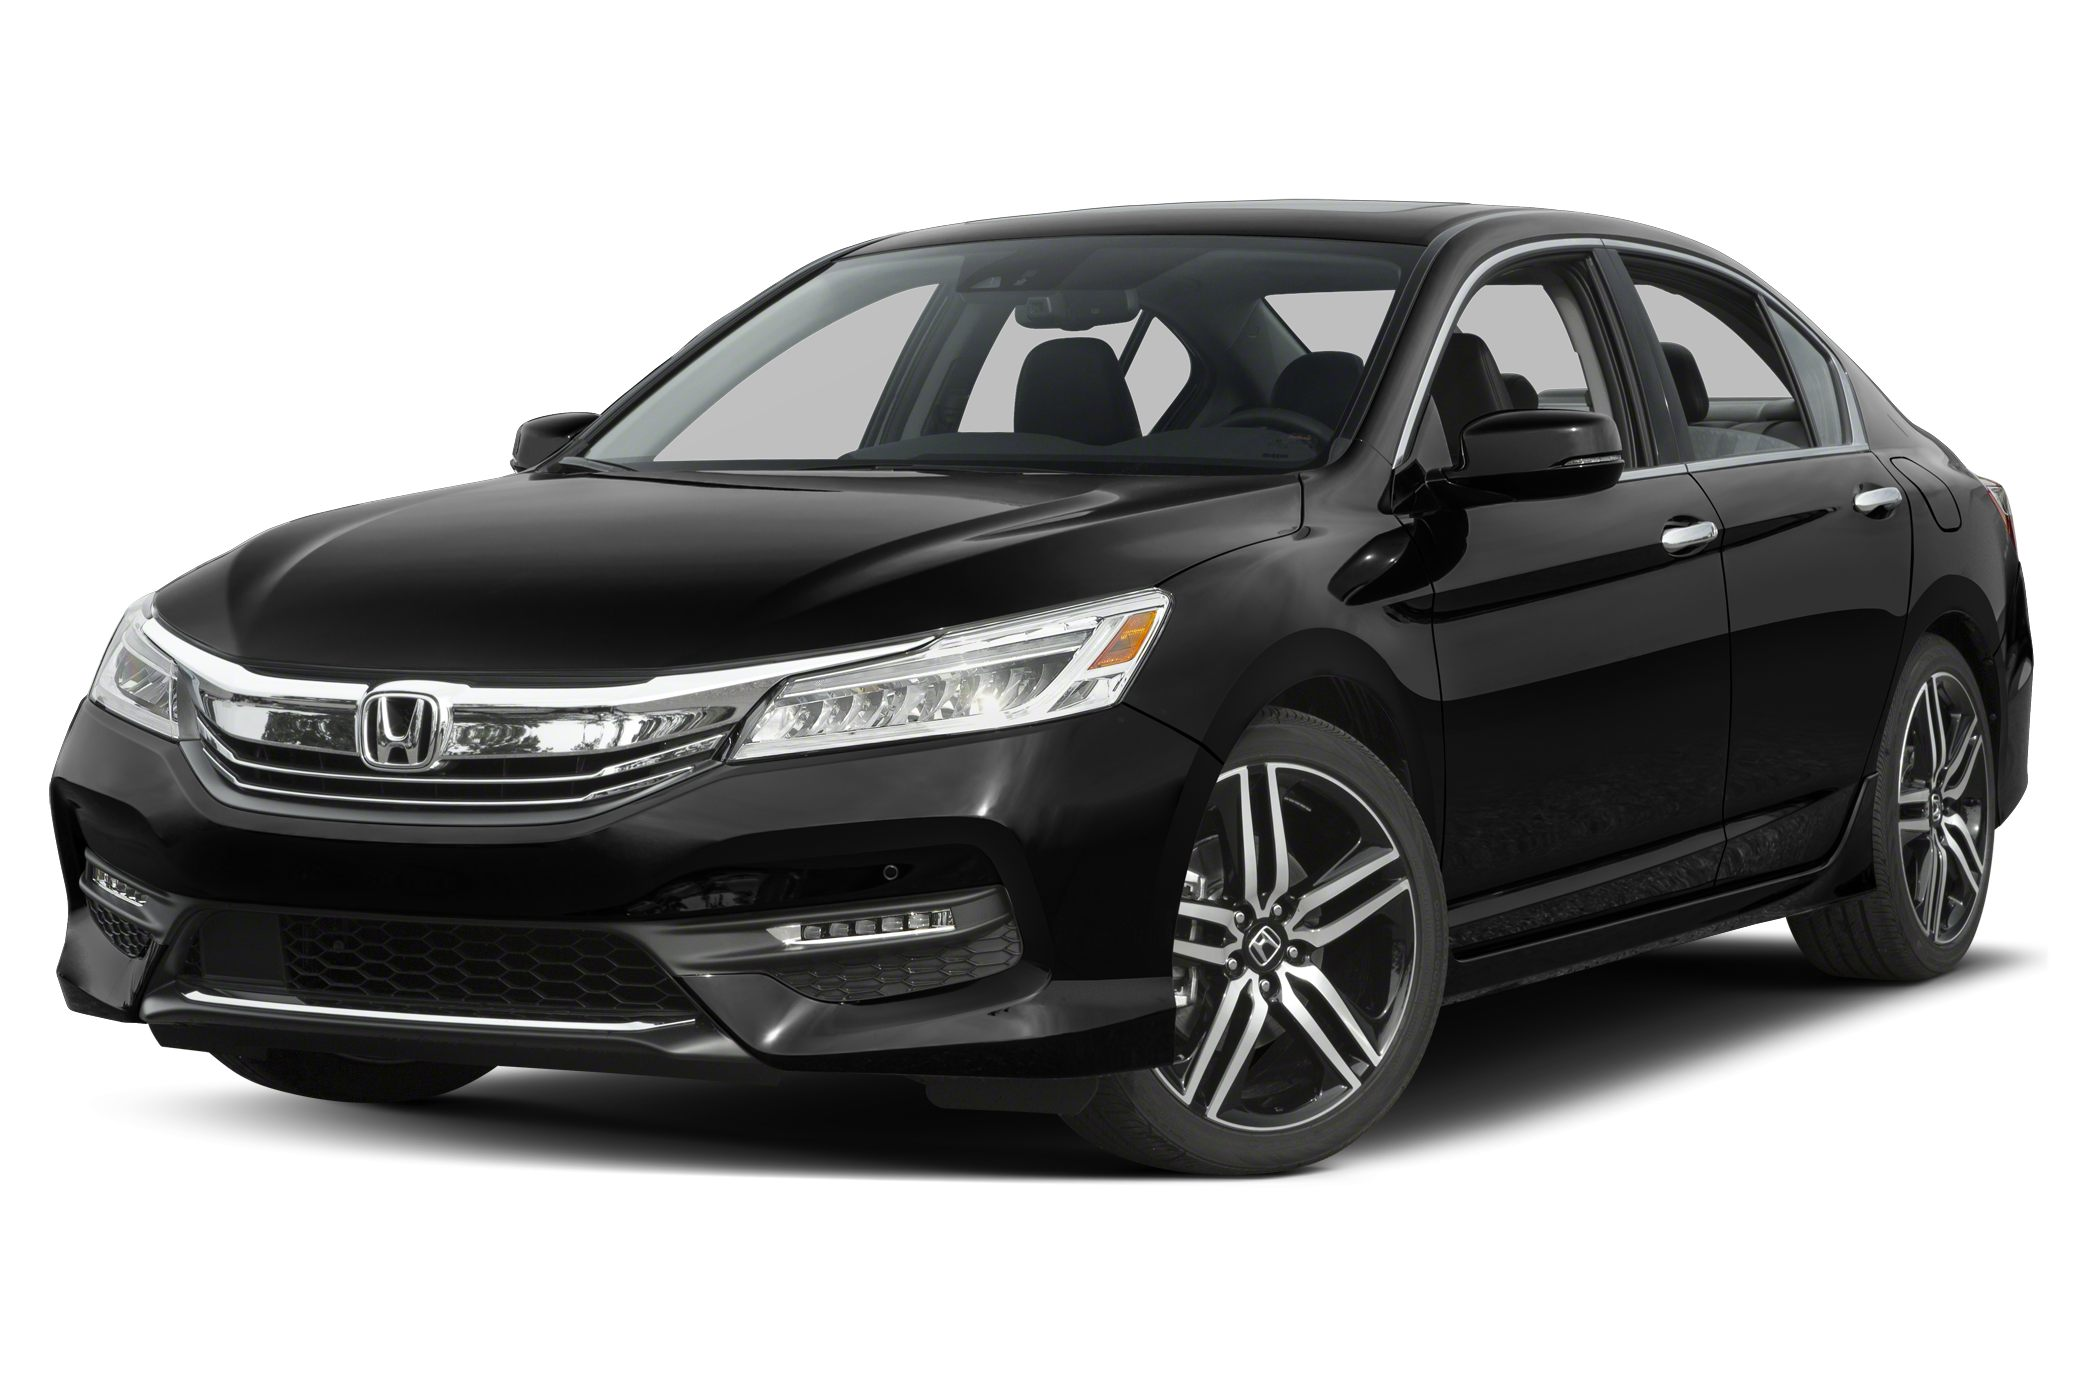 2017 Honda Accord Touring V6 Navigation Hey Look right here There isnt a better car than this